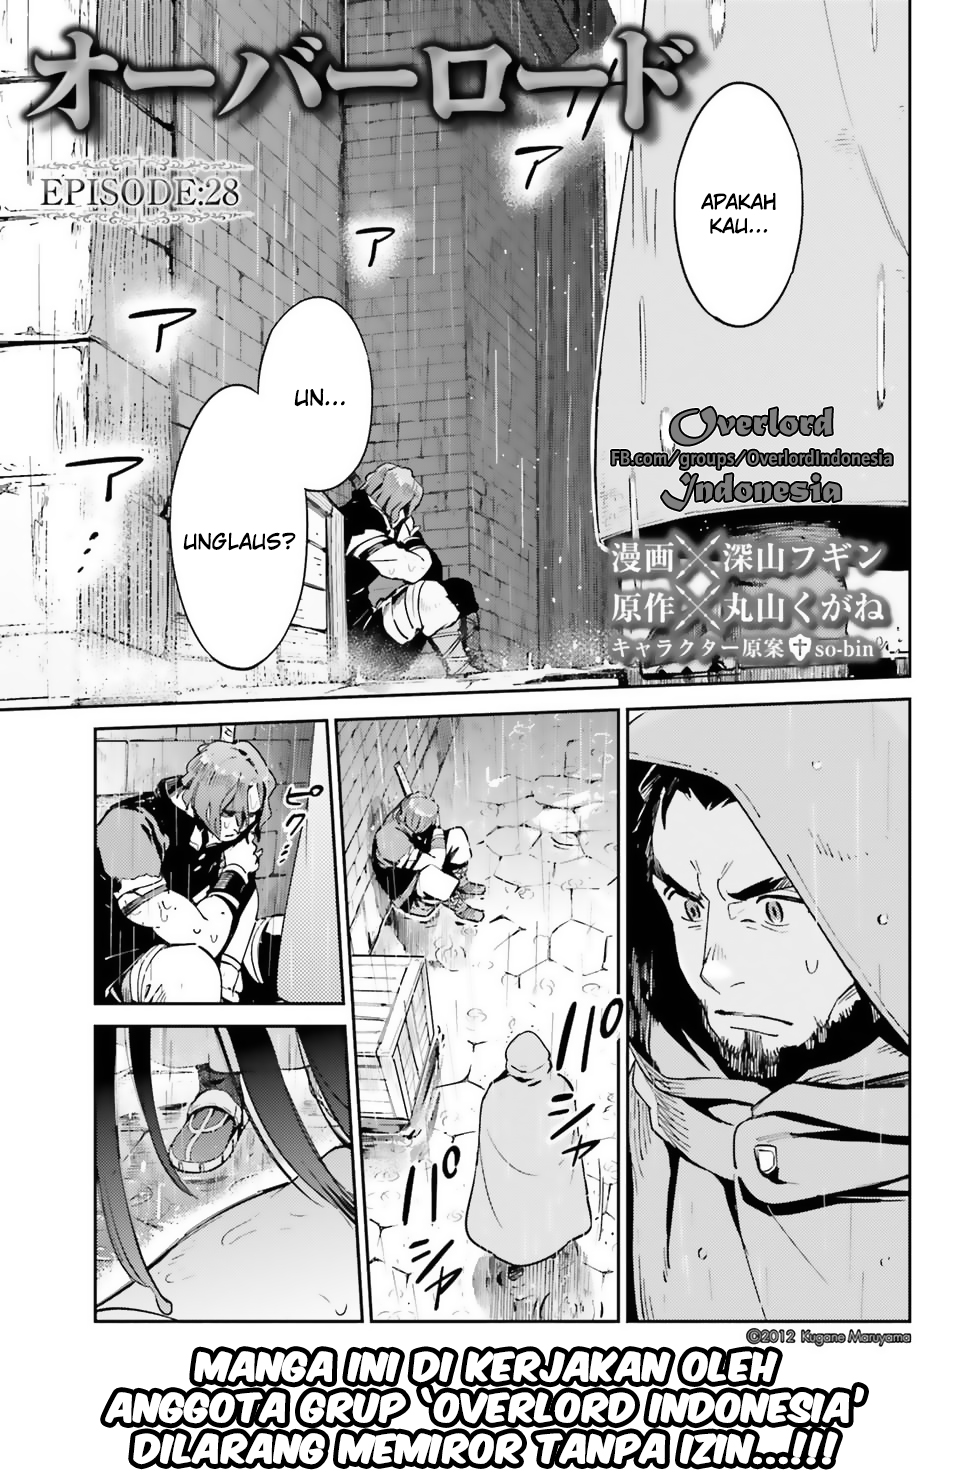 Overlord chapter 28